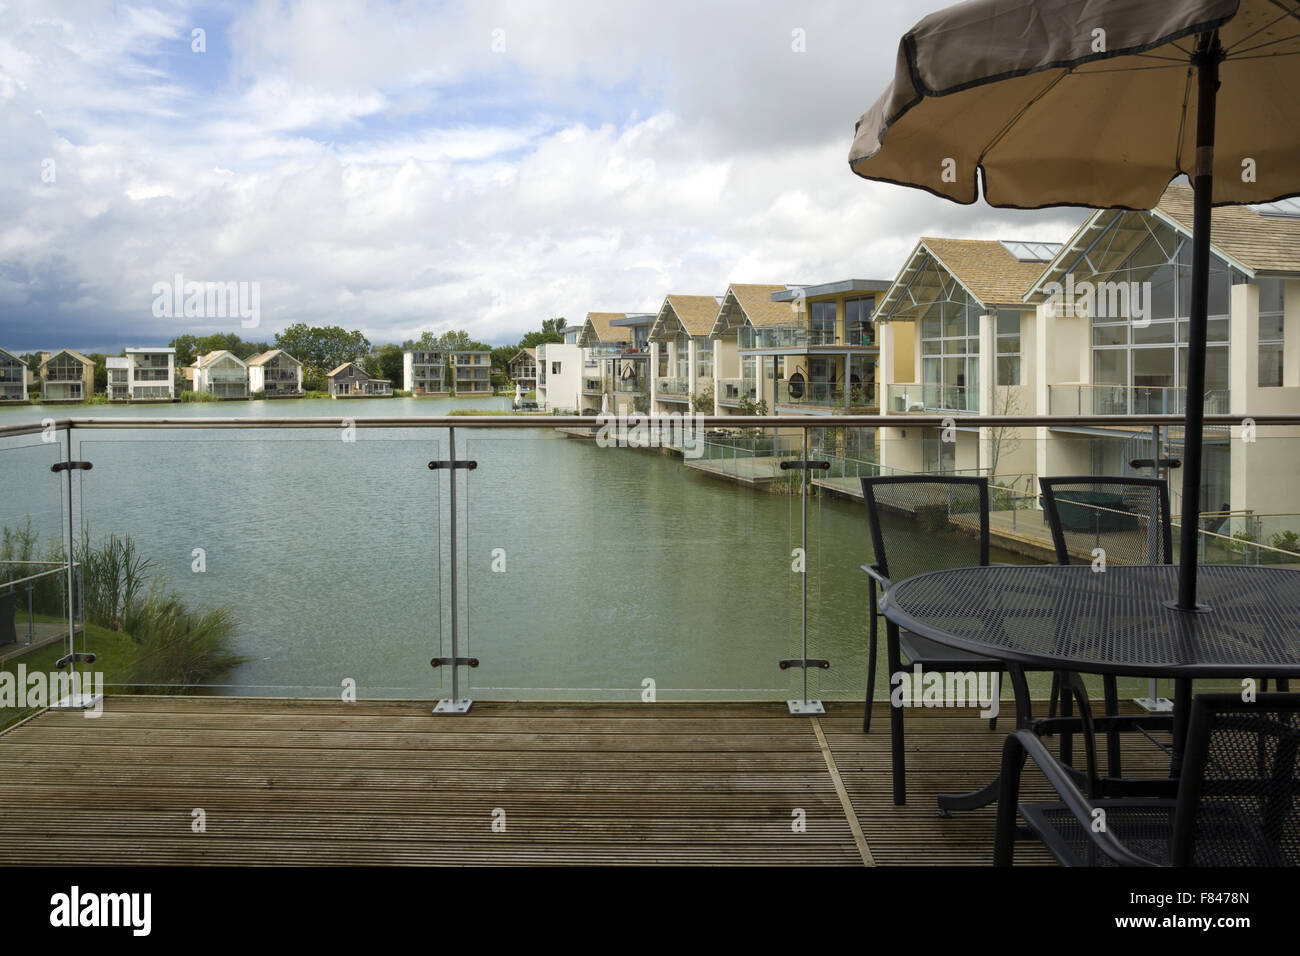 Holiday Homes On Lower Mill Estate Development The Cotswold Water Park Near Cirencester Gloucestershire